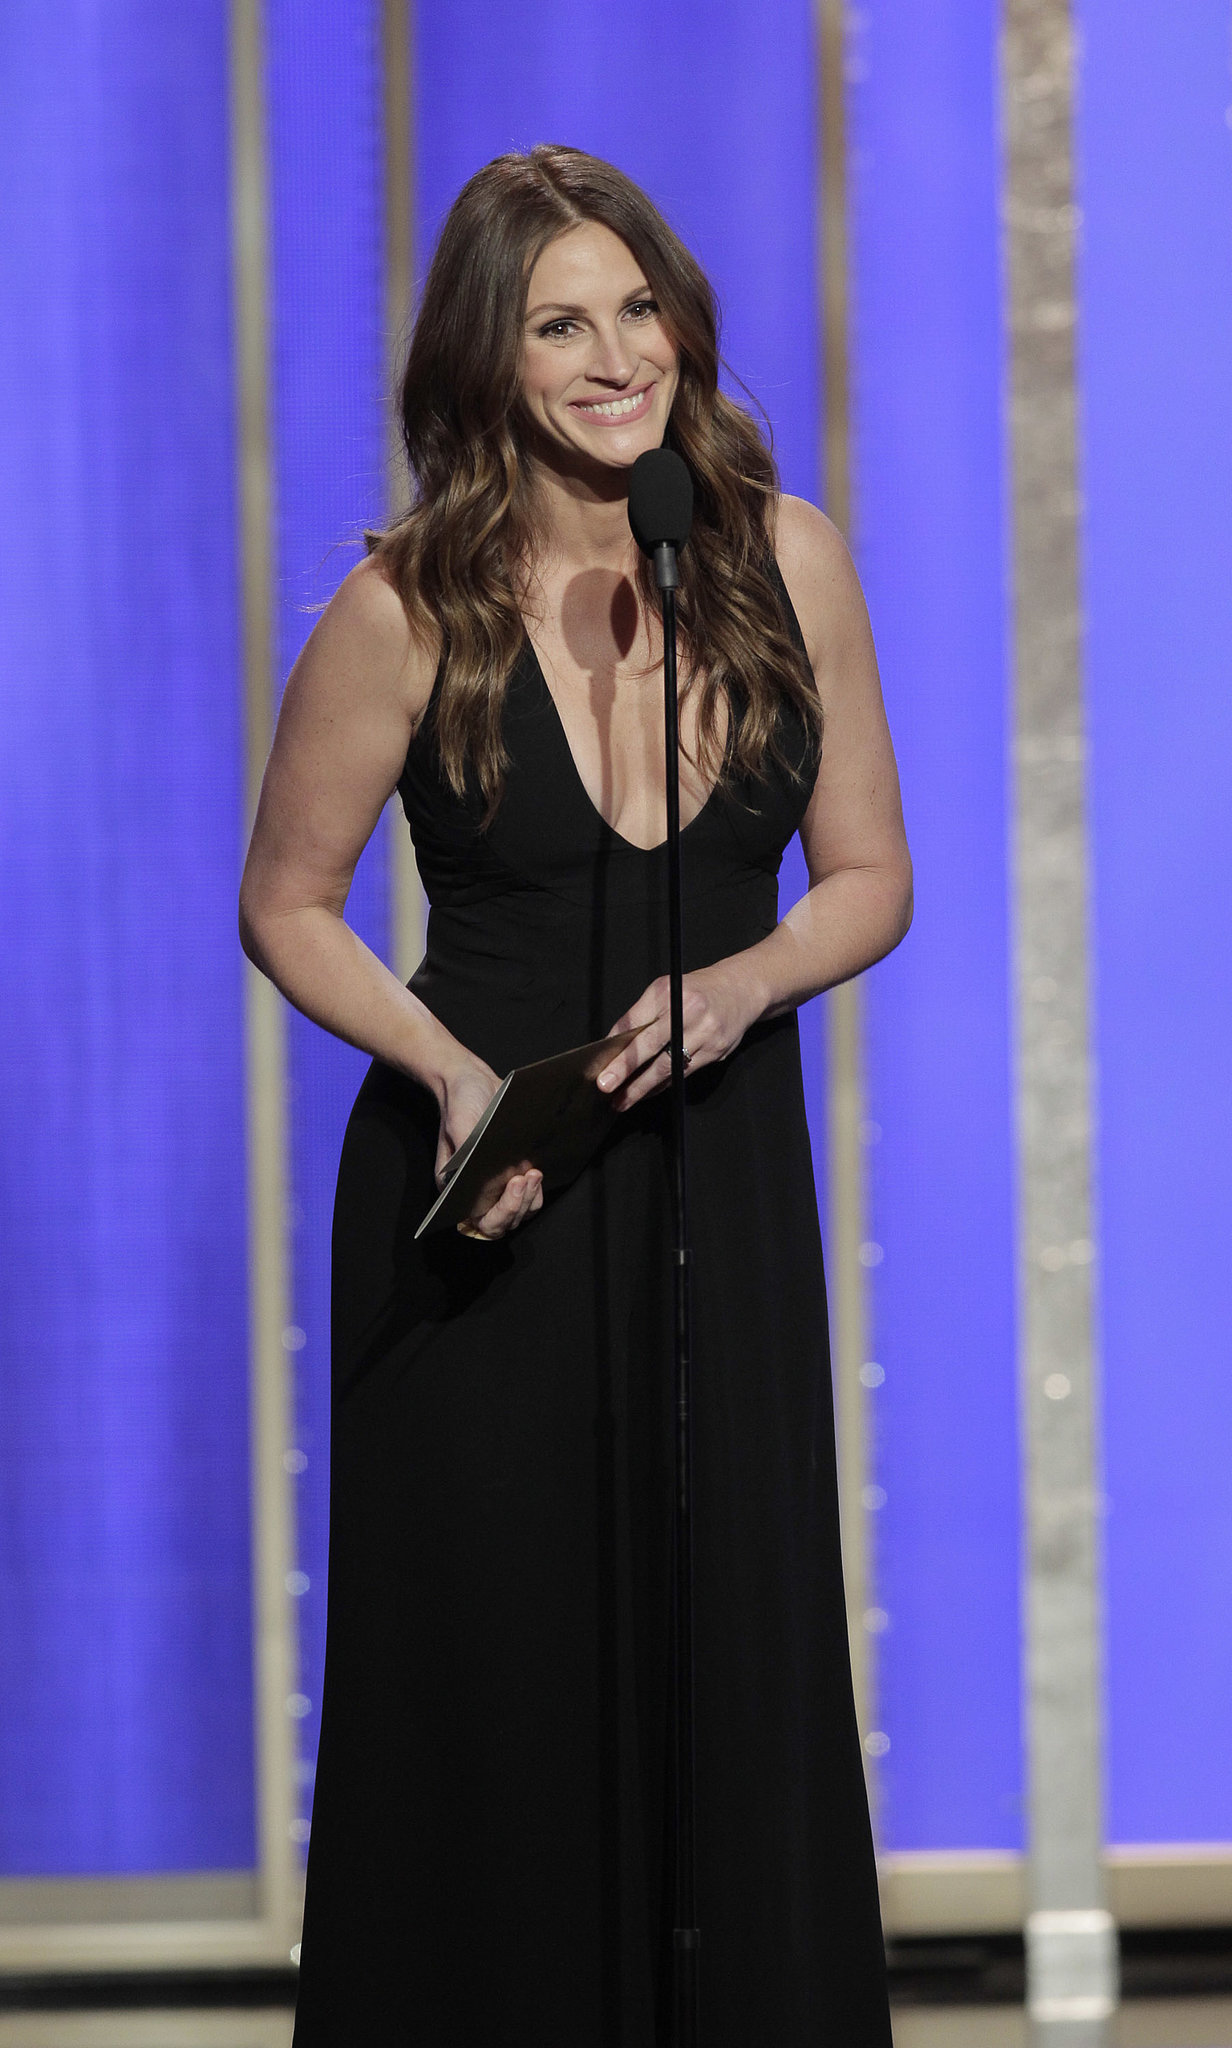 Julia Roberts made a special appearance at the Golden Globes.